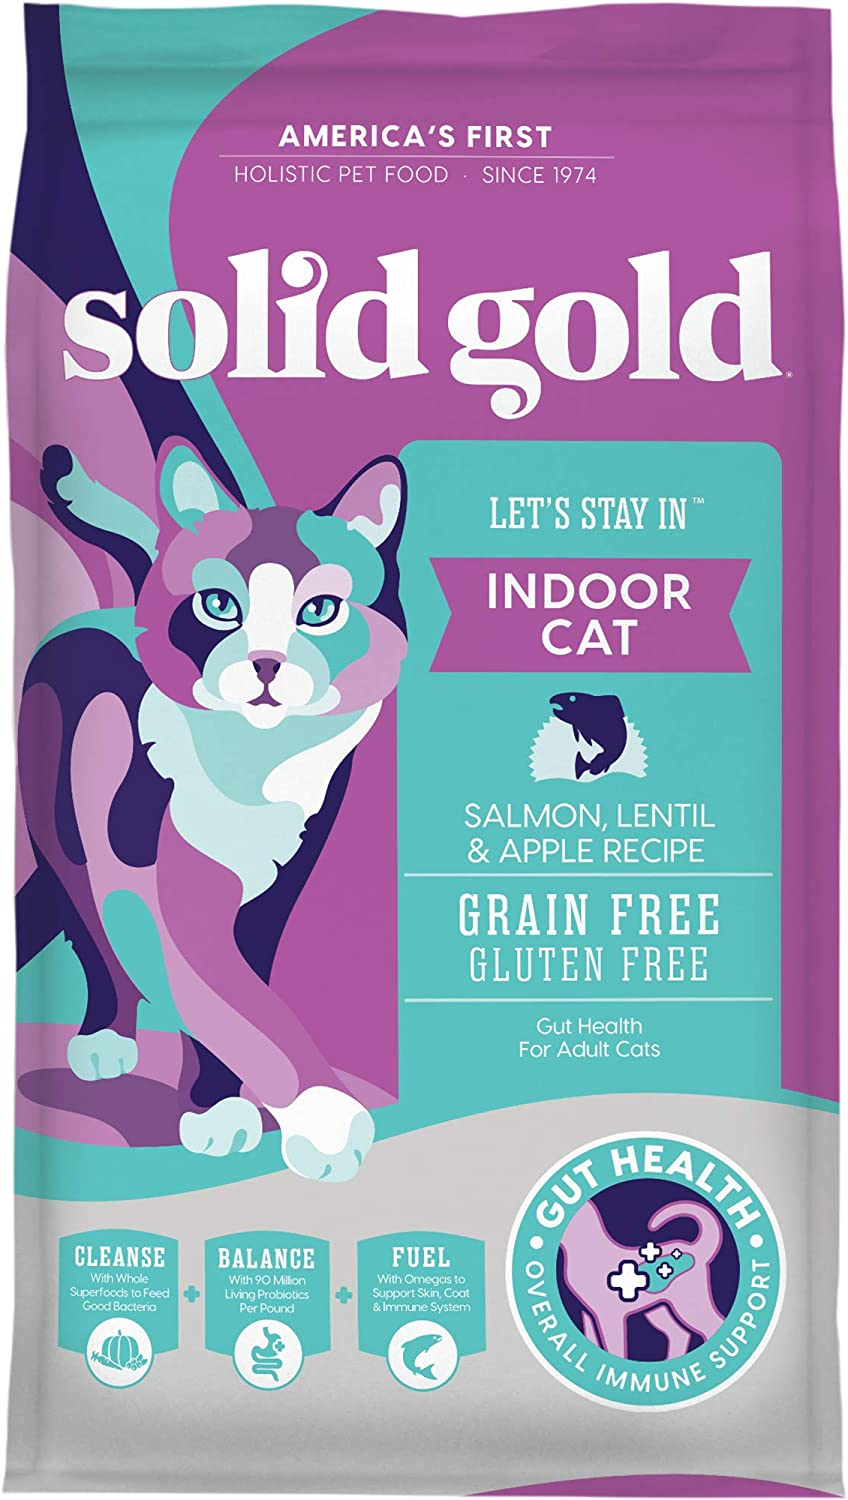 7. Solid Gold Let's Stay In Salmon, Lentil & Apple Recipe for Adult Indoor Cats